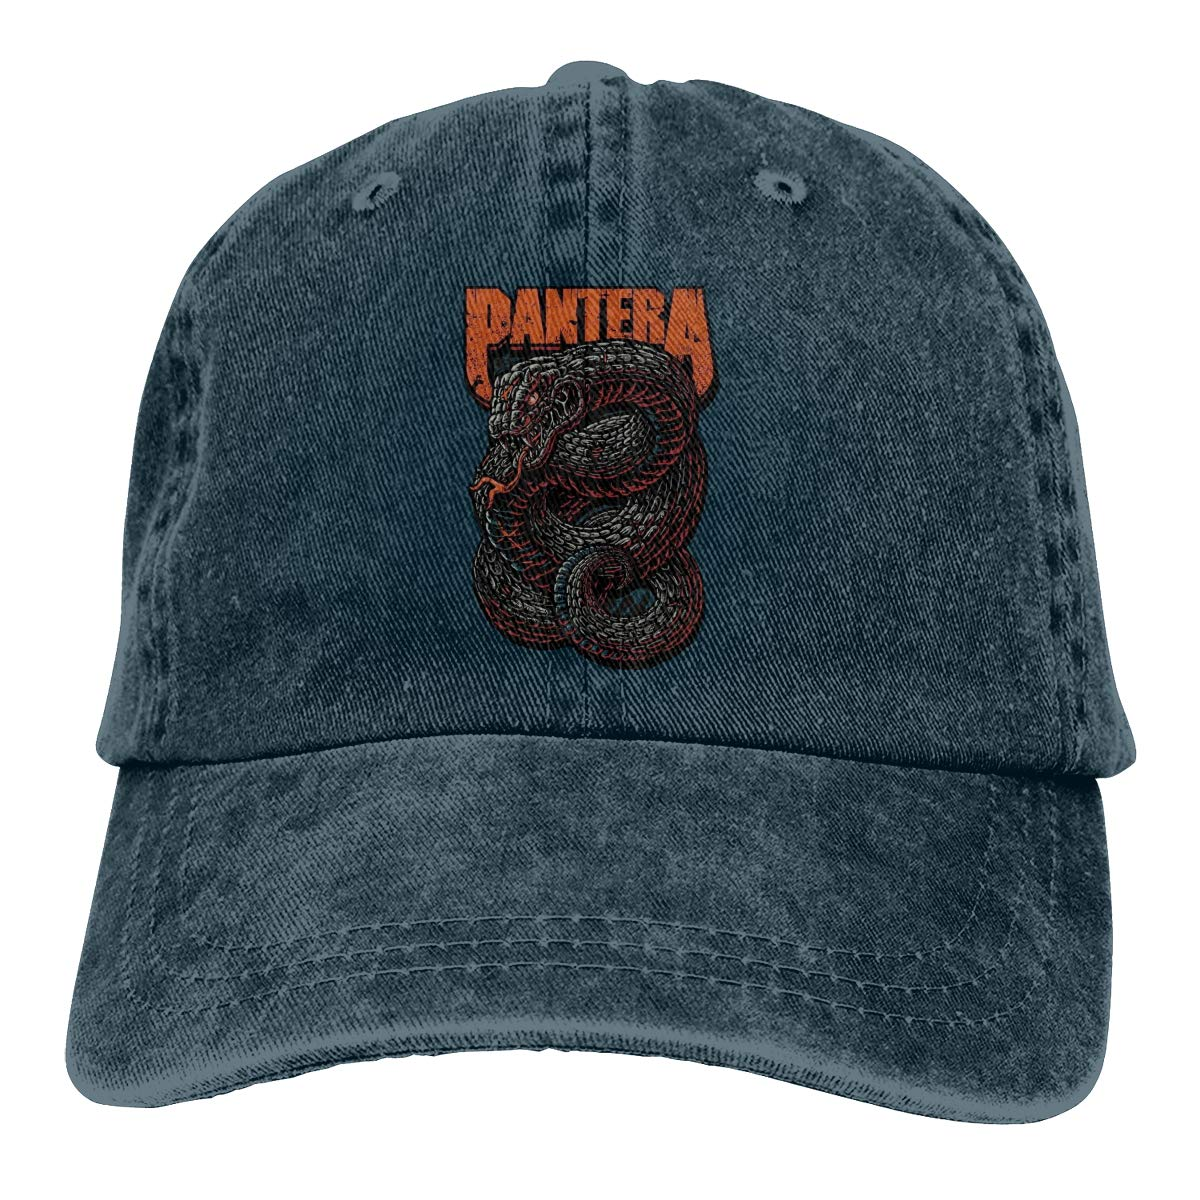 XZHBG Pantera Denim Baseball Caps Adult Caps Unisex Adjustable